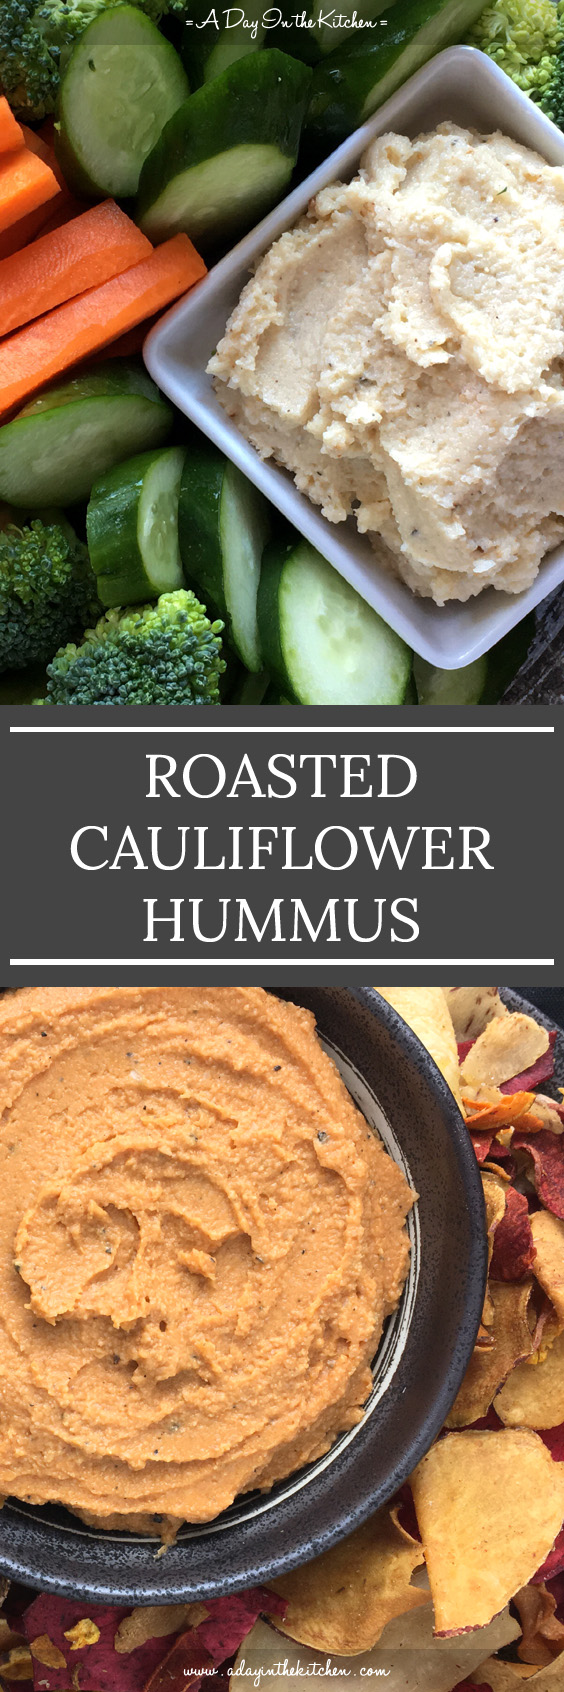 You don't need beans to make hummus! Roasted Cauliflower Hummus is just as tasty as regular hummus, if not moreso! Add tomato paste to the mix to make Roasted Cauliflower Tomato Hummus! #hummus #roastedcauliflower #roastedcauliflowerhummus #tahini #tomatohummus #glutenfree #paleo